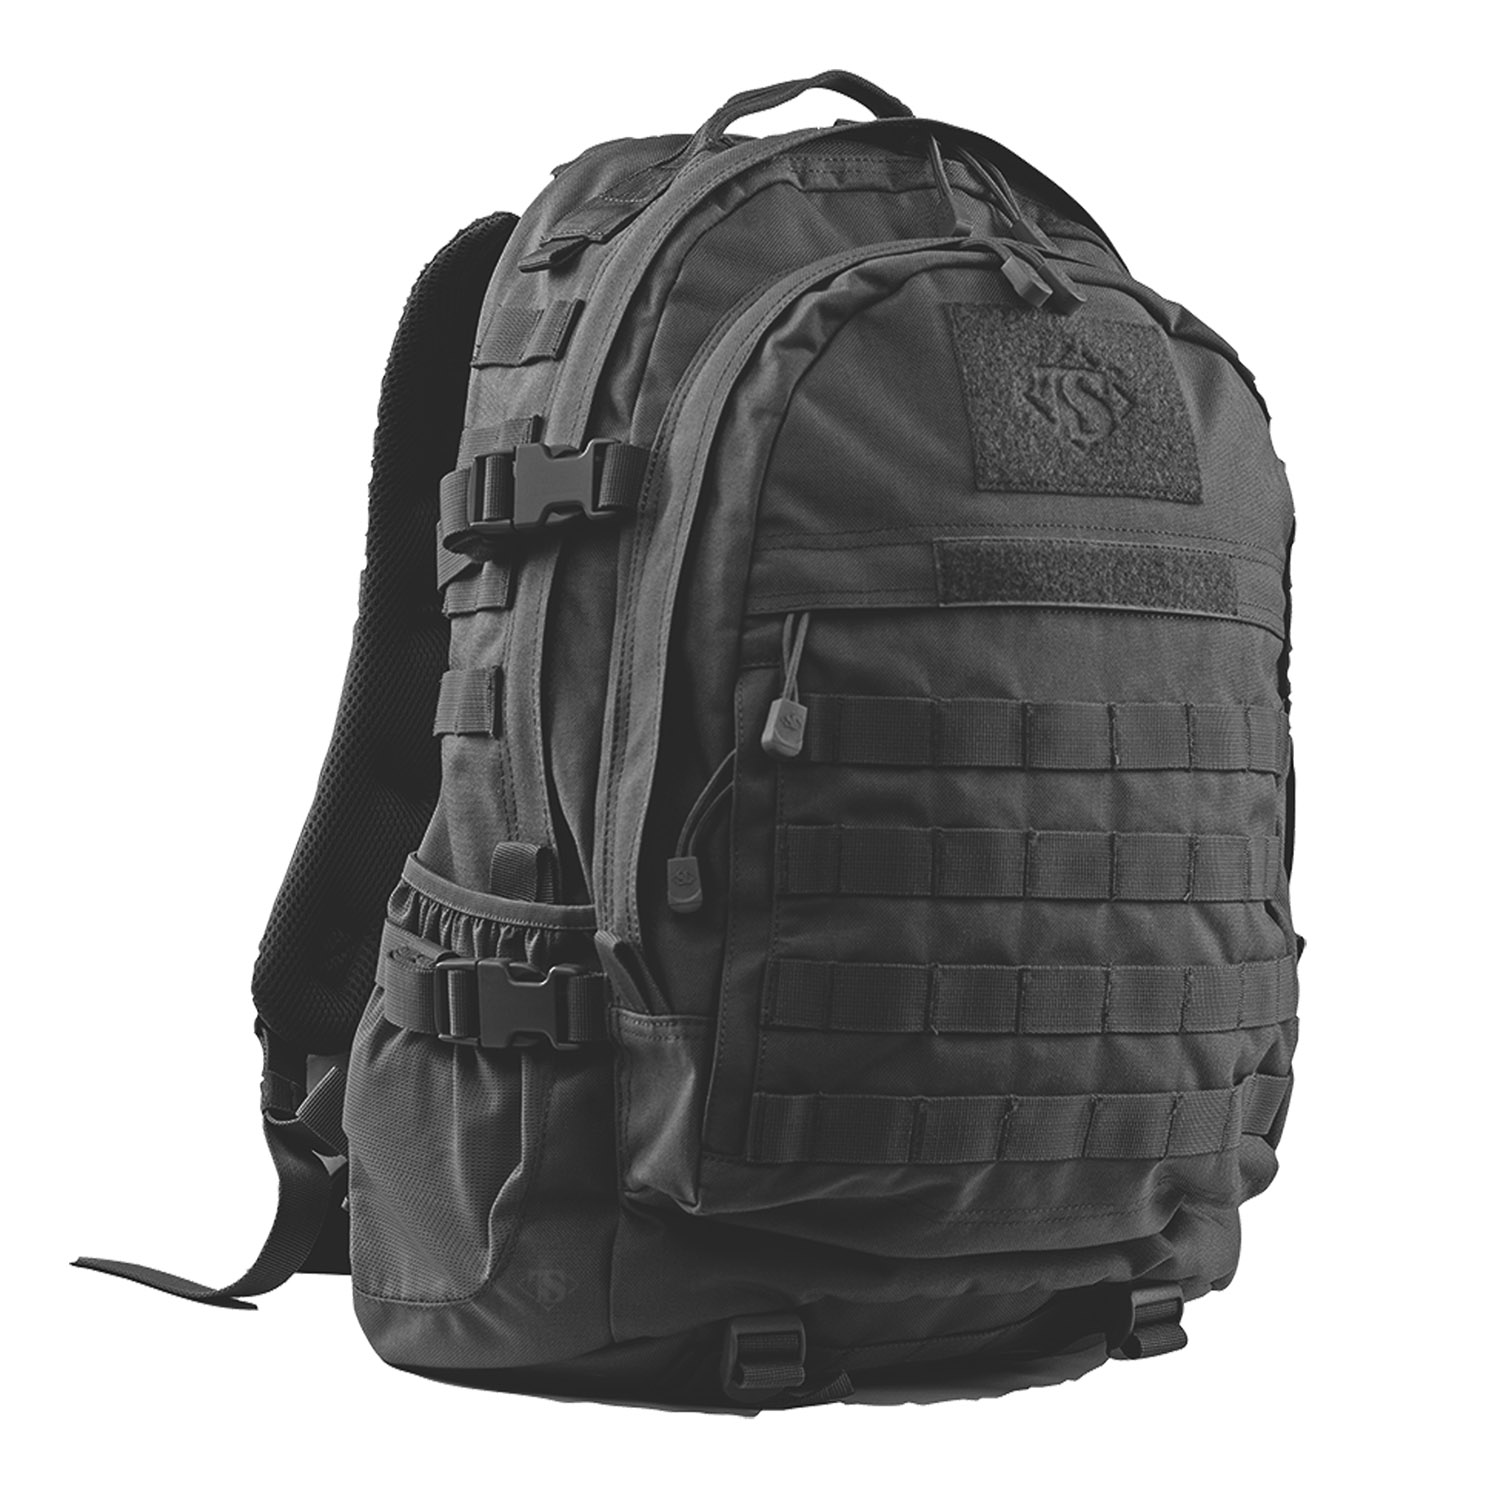 Tru-Spec Elite Three-Day Backpack